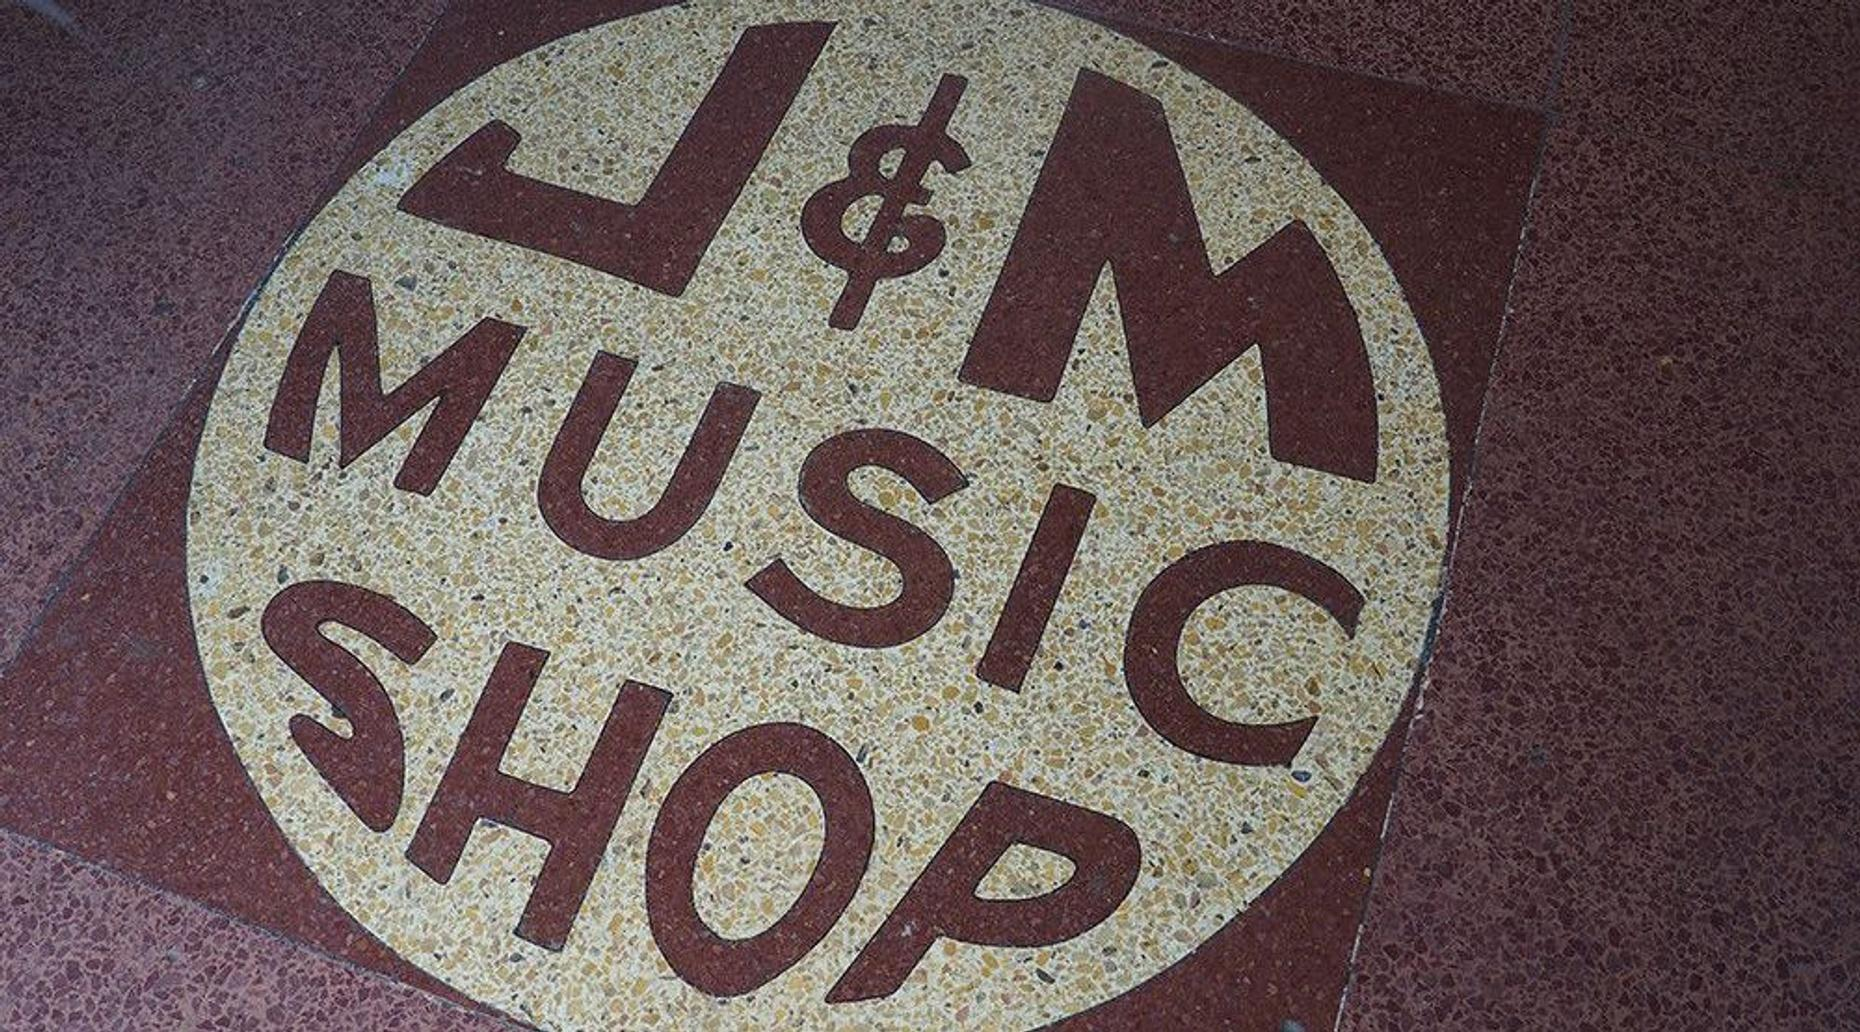 Listen & Learn Music of New Orleans Tour